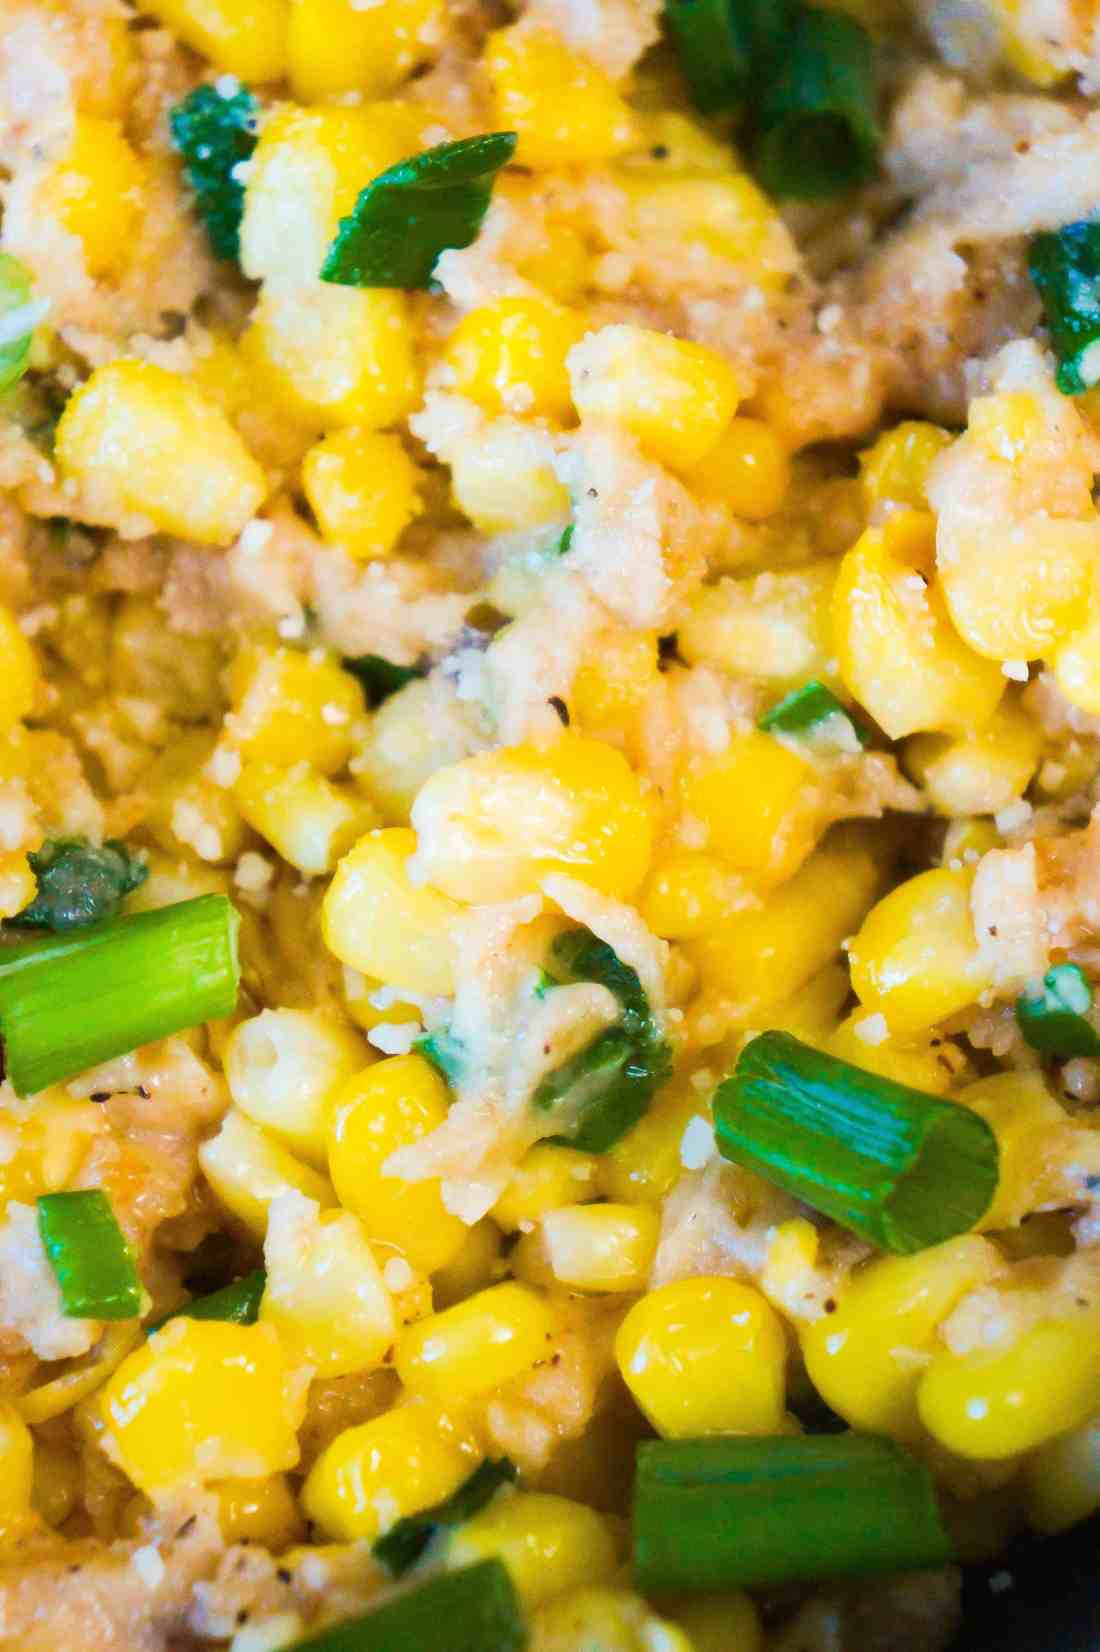 Corn side dish with green onions and Swiss cheese.